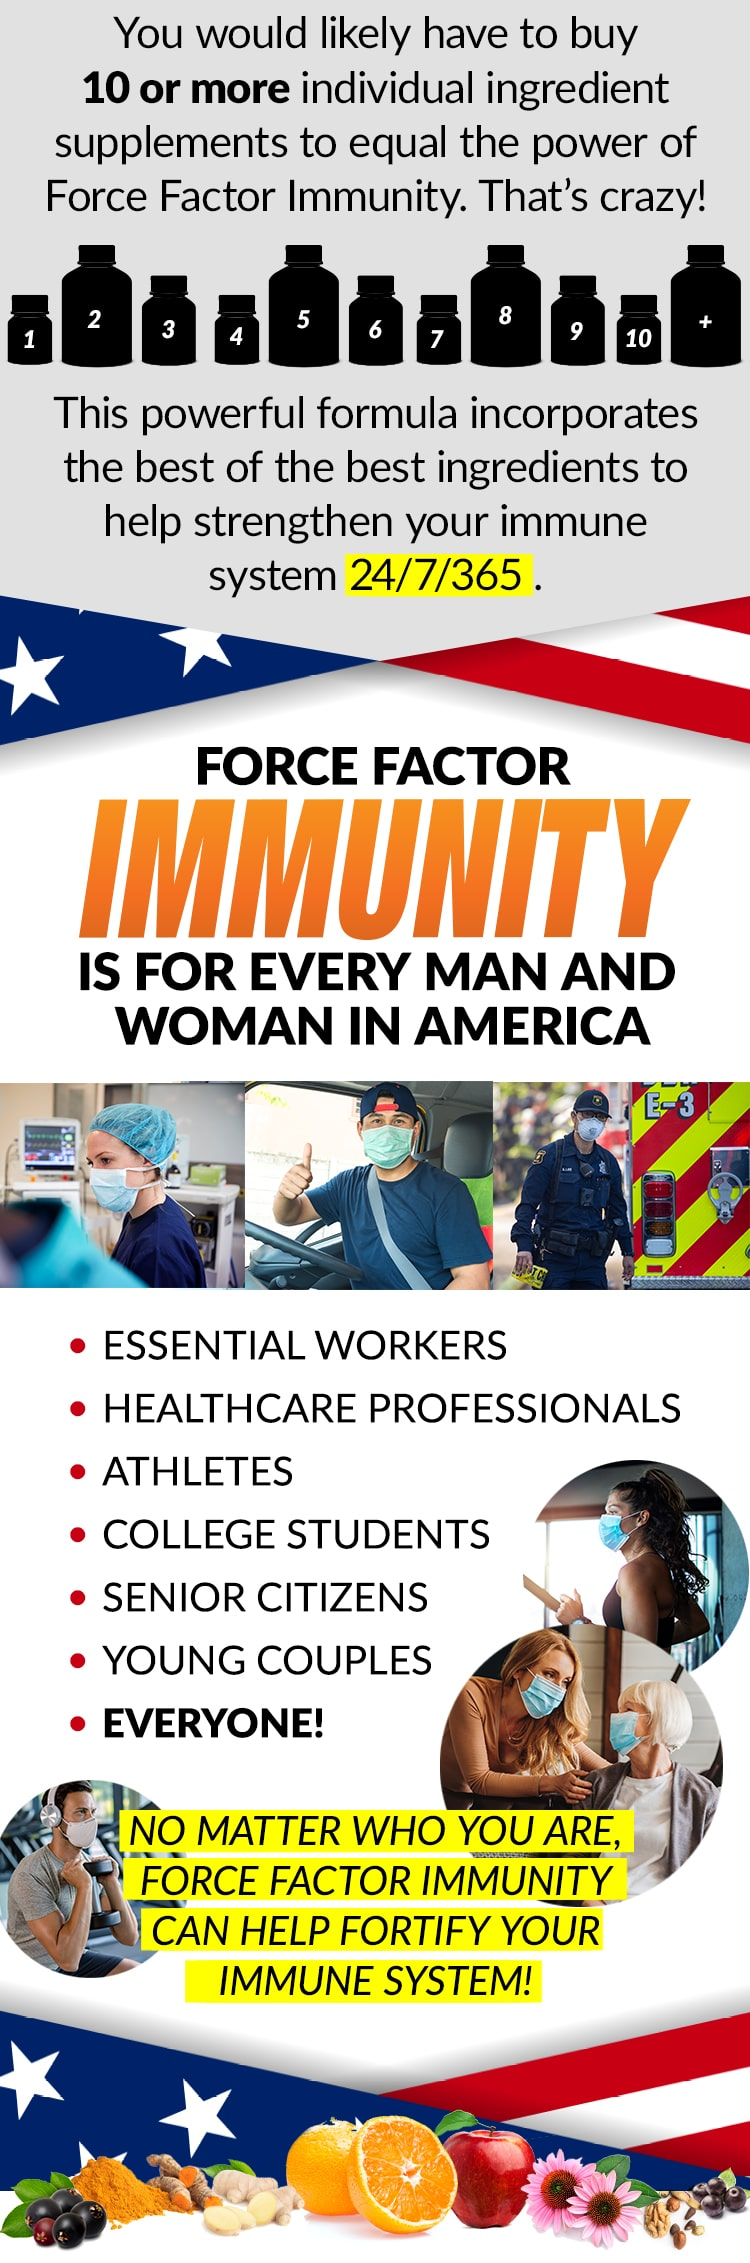 You would likely have to buy 10 or more individual ingredient supplements to equal the power of Force Factor Immunity. That's crazy! This powerful formula incorporates the best of the best ingredients to help strengthen your immune system 24/7/365. FORCE FACTORY IMMUNITY IS FOR EVERY MAN AND WOMAN IN AMERICA. ESSENTIAL WORKERS, HEALTHCARE PROFESSIONALS, ATHLETES, COLLEGE STUDENTS, SENIOR CITIZENS, YOUNG COUPLES, EVERYONE! NO MATTER WHO YOU ARE, FORCE FACTOR IMMUNITY CAN HELP FORTIFY YOUR IMMUNE SYSTEM!